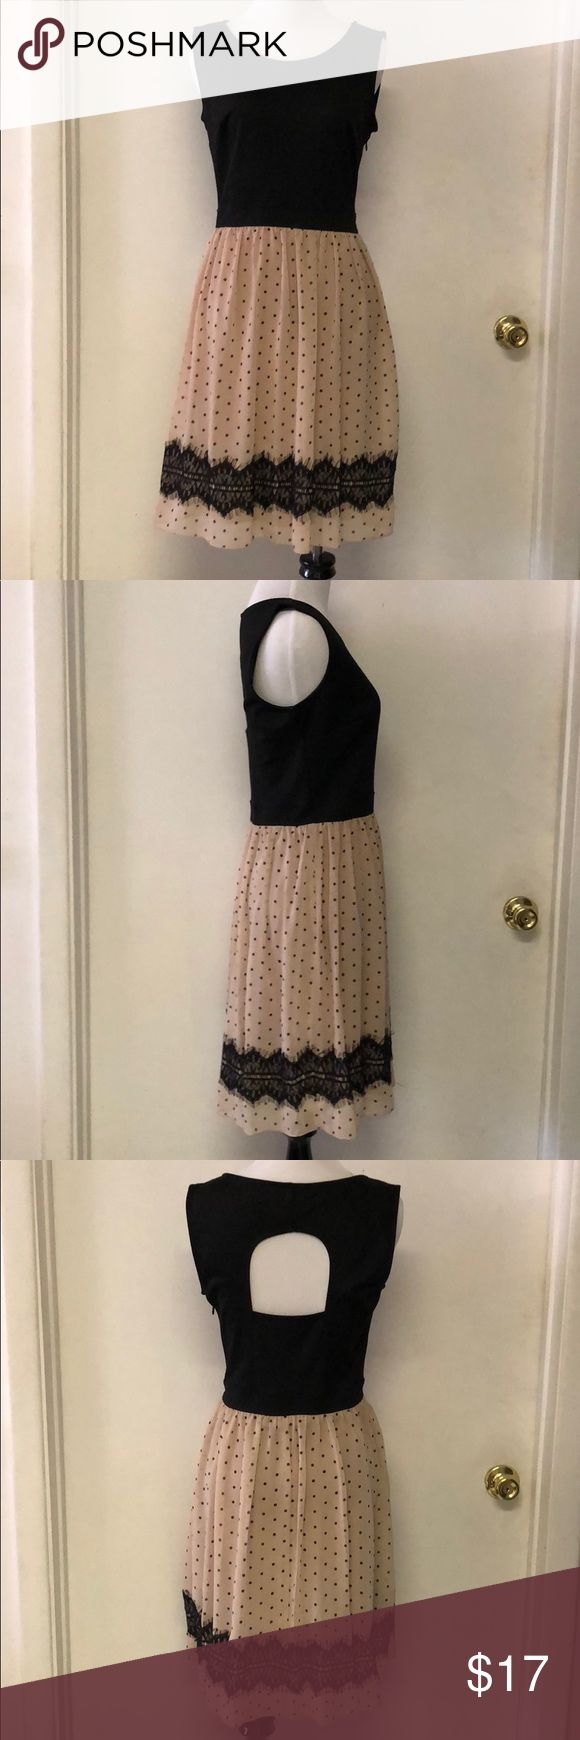 En Focus Studio sleeveless dress size 4 blck/cream Cute sleeveless dress with open back detail. I wore this dress 1 time. Beautiful lace detail, great for parties and going out. Excellent condition! Size 4 En Focus Studio Dresses